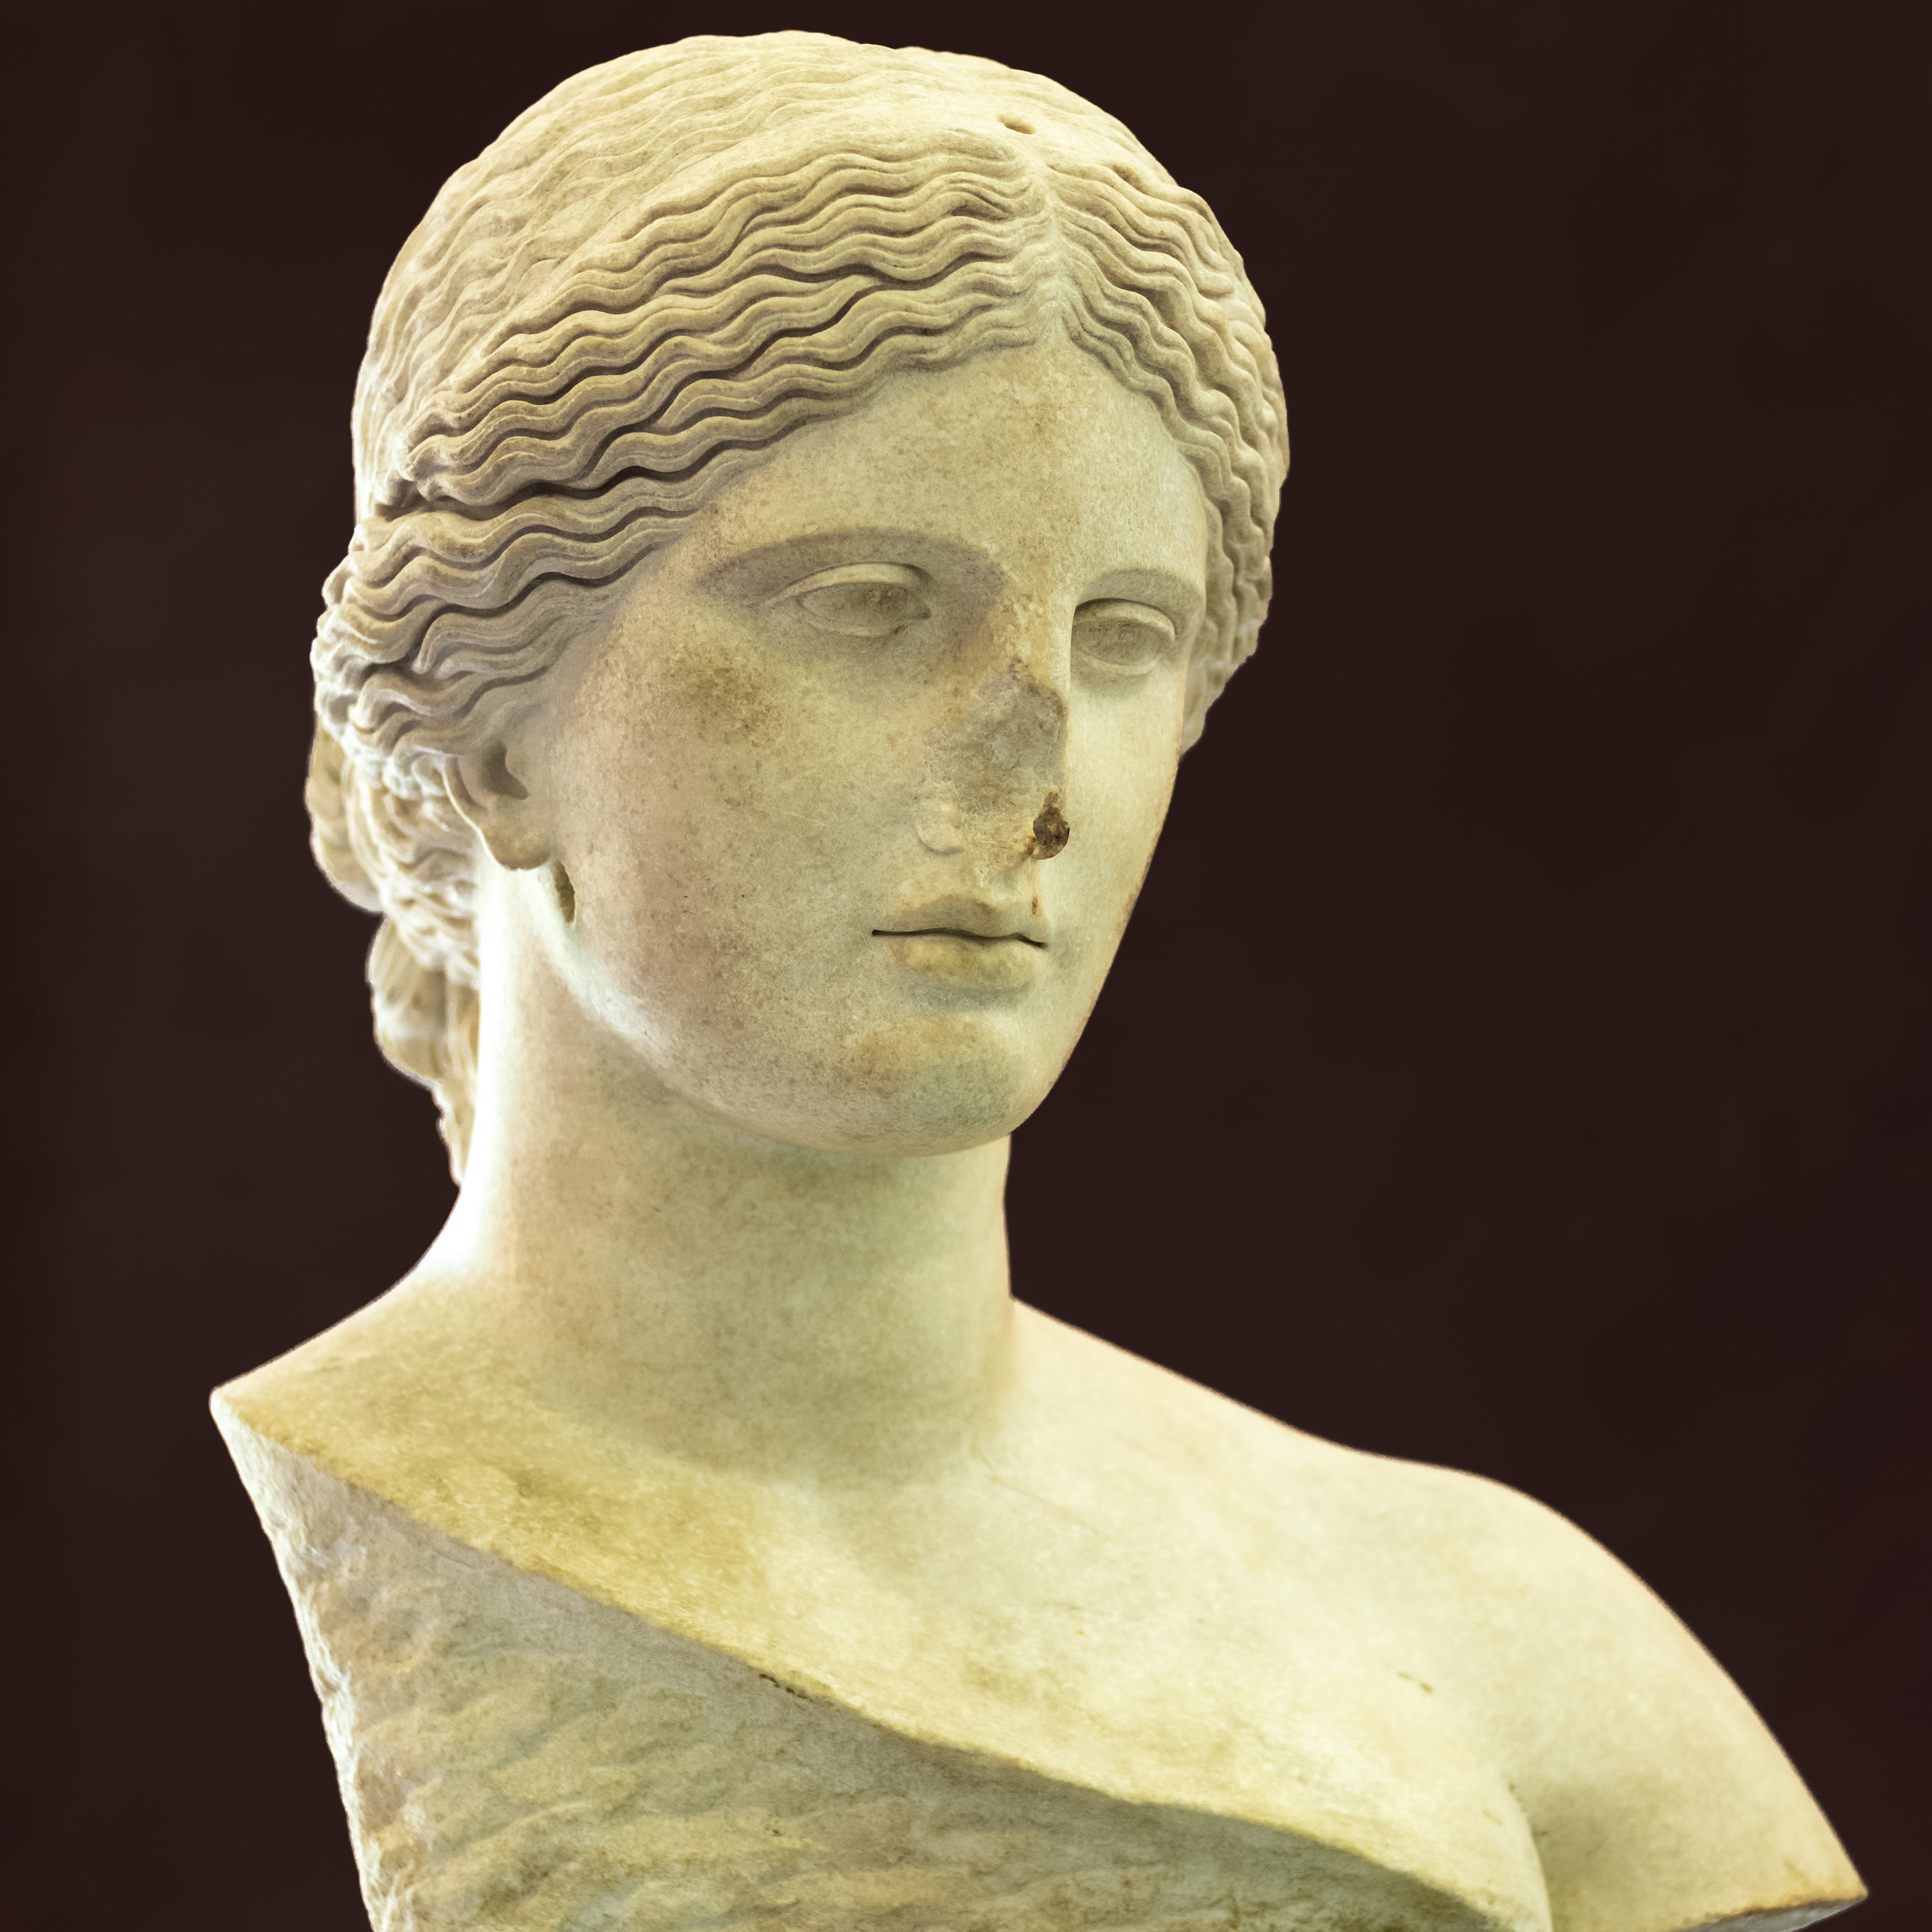 Aphrodite 1st Century BC, Musée Départmental de l'Arles Antique, Arles, France